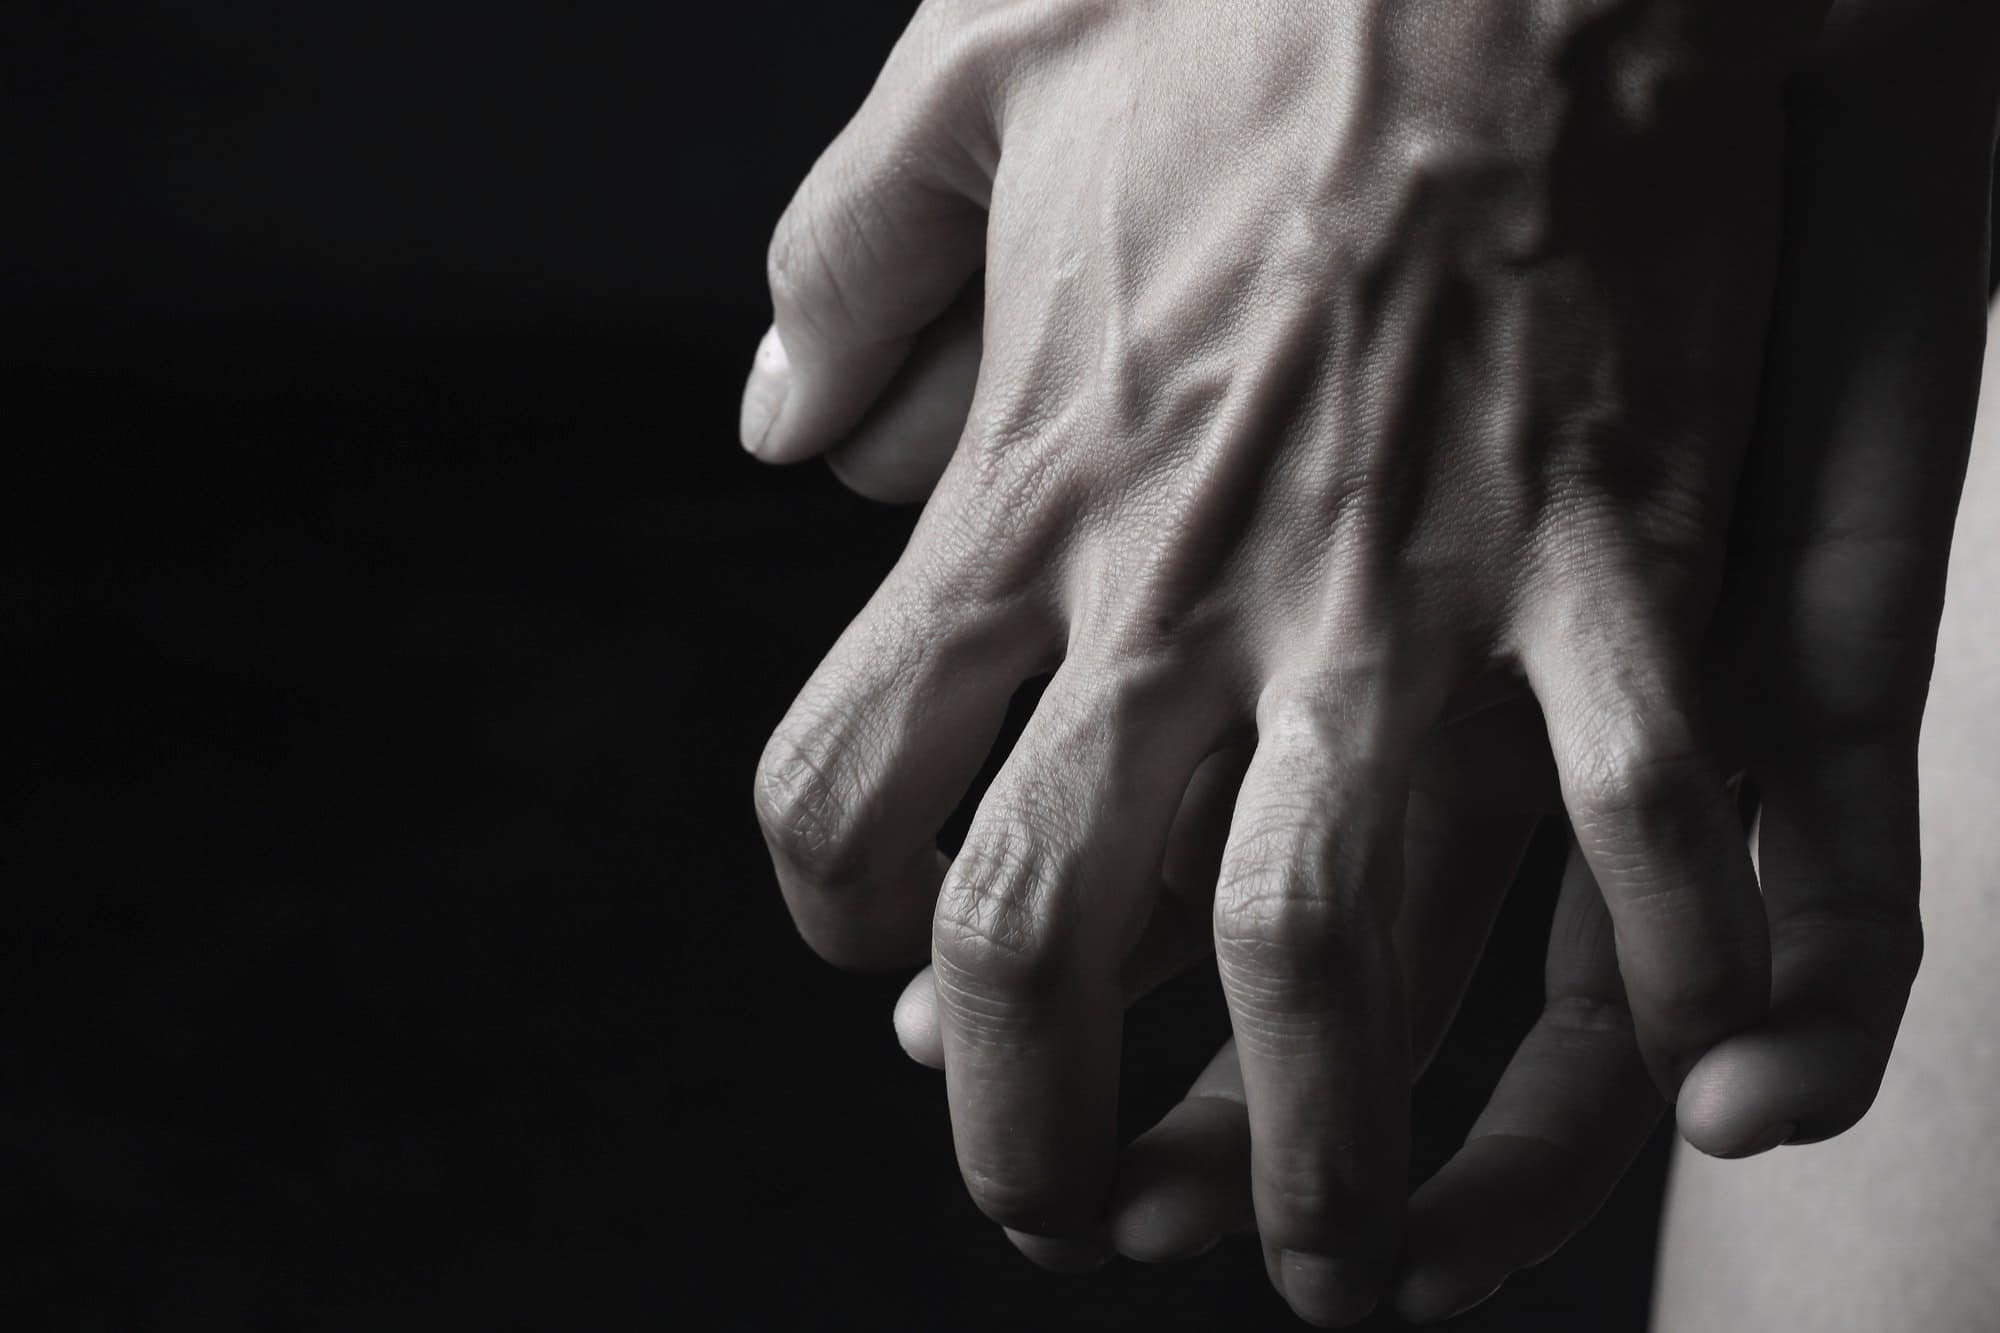 Dark Veins in Hands